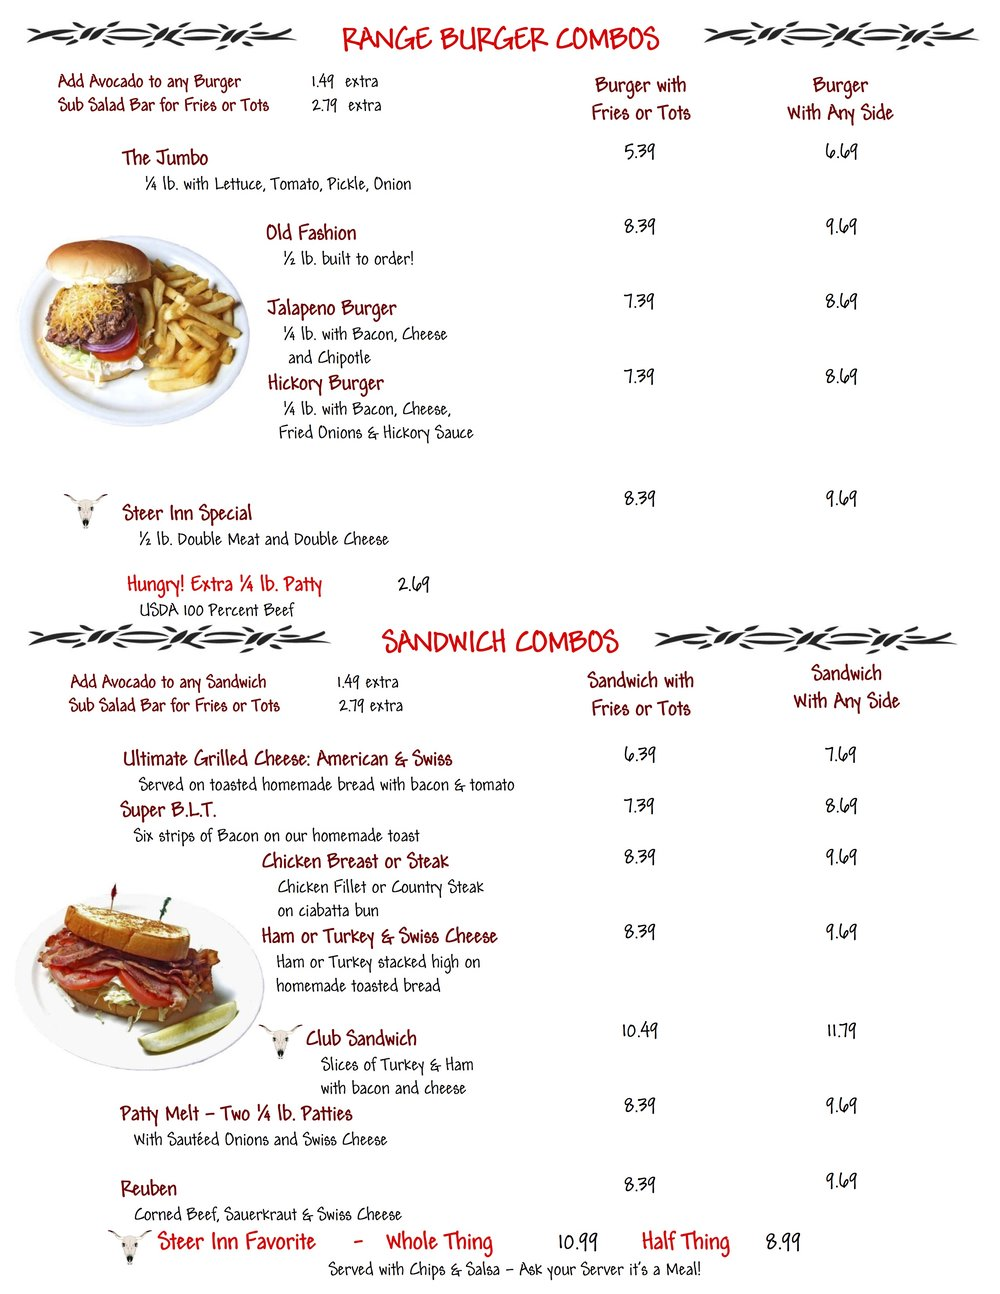 Steer Inn Menu Mannford 2016 - 2.jpg